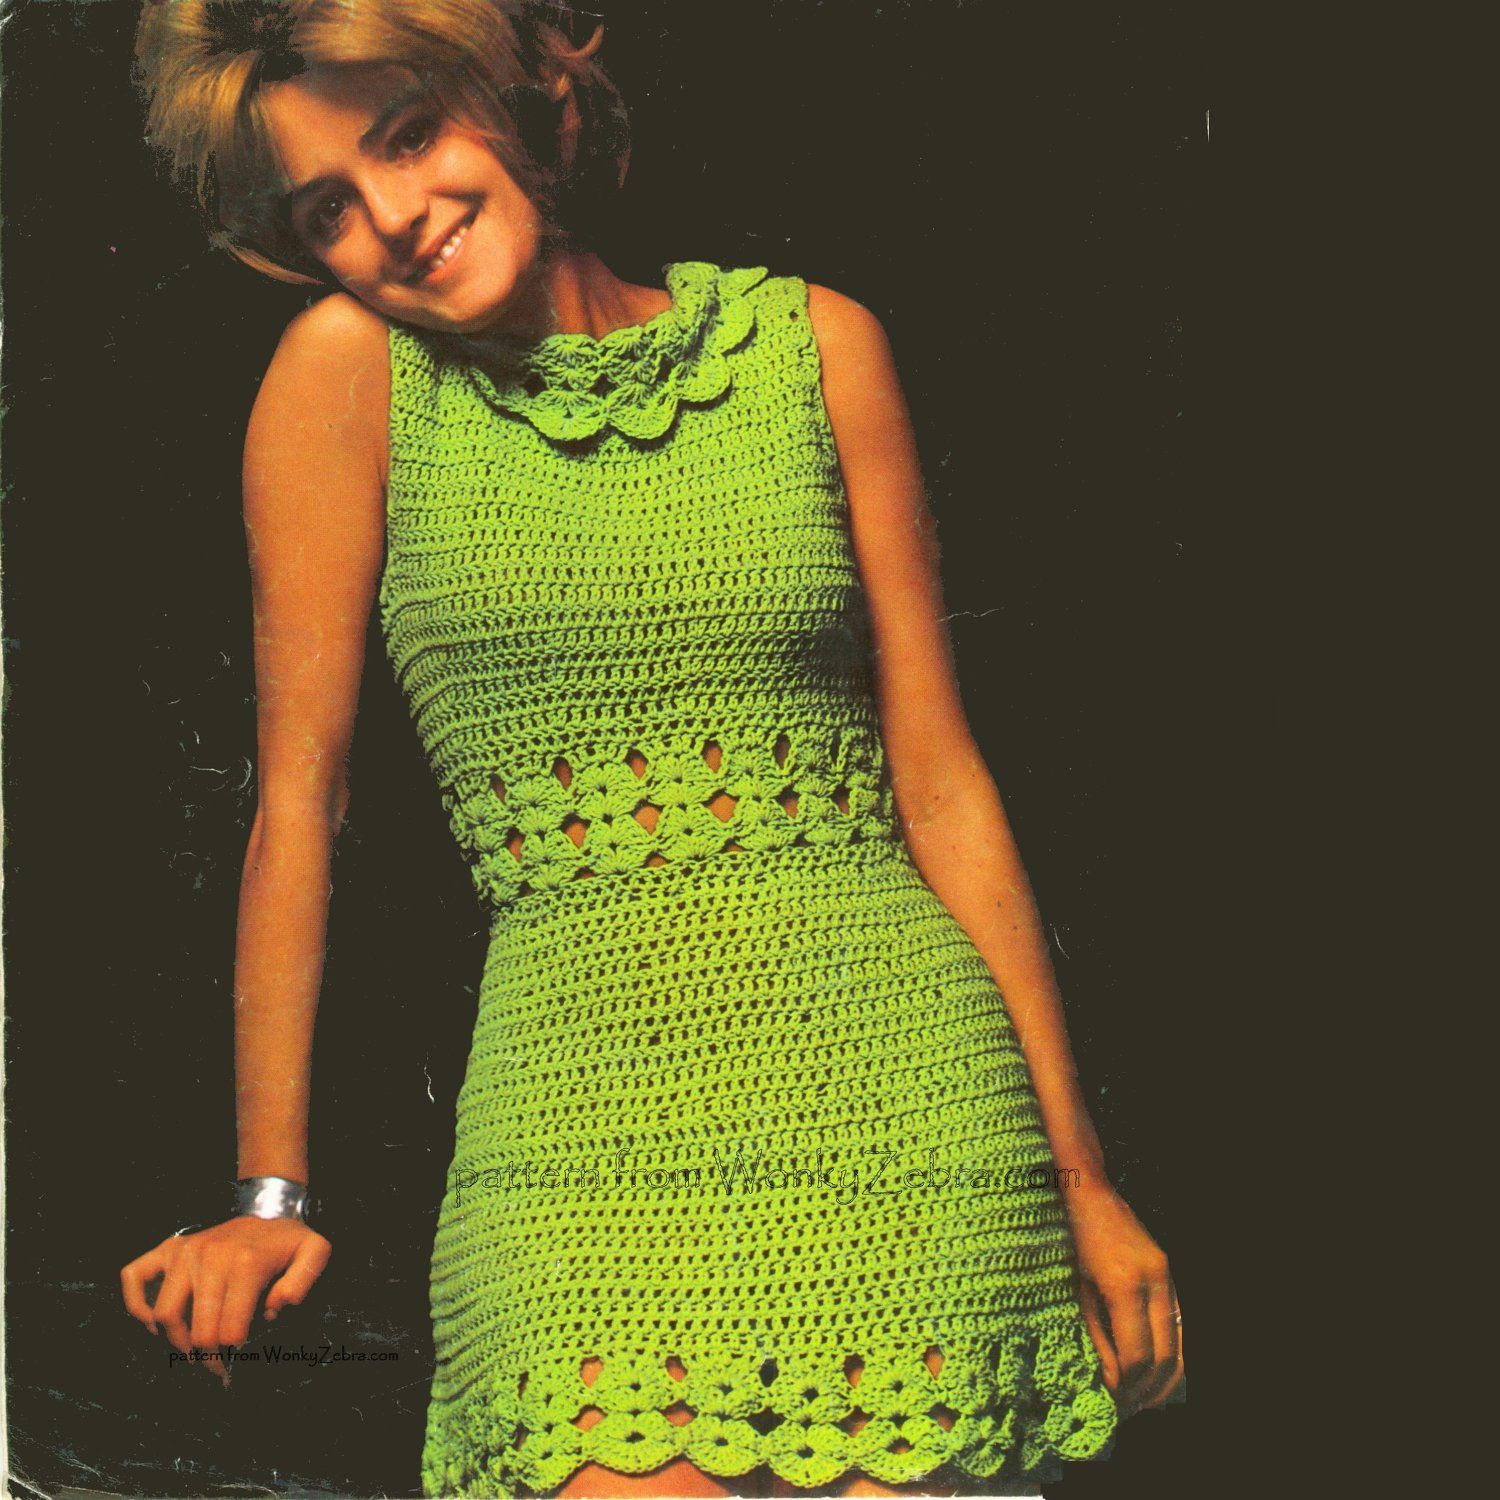 Unique Vintage Crochet Green Goddess Dress Pattern Pdf 409 From Crochet Clothing Patterns Of Amazing 44 Pics Crochet Clothing Patterns